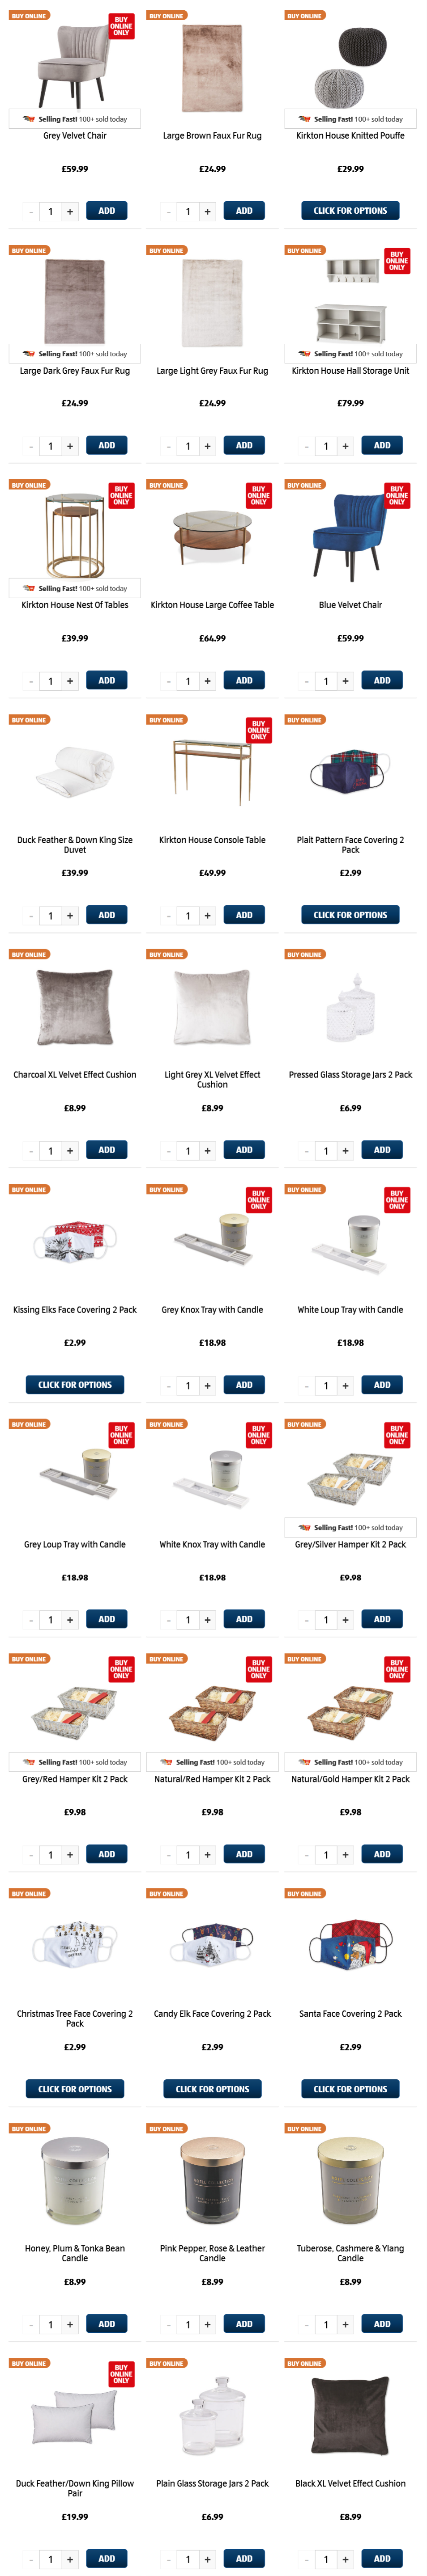 ALDI Thursday Offers 19th November 2020 ALDI Home Christmas